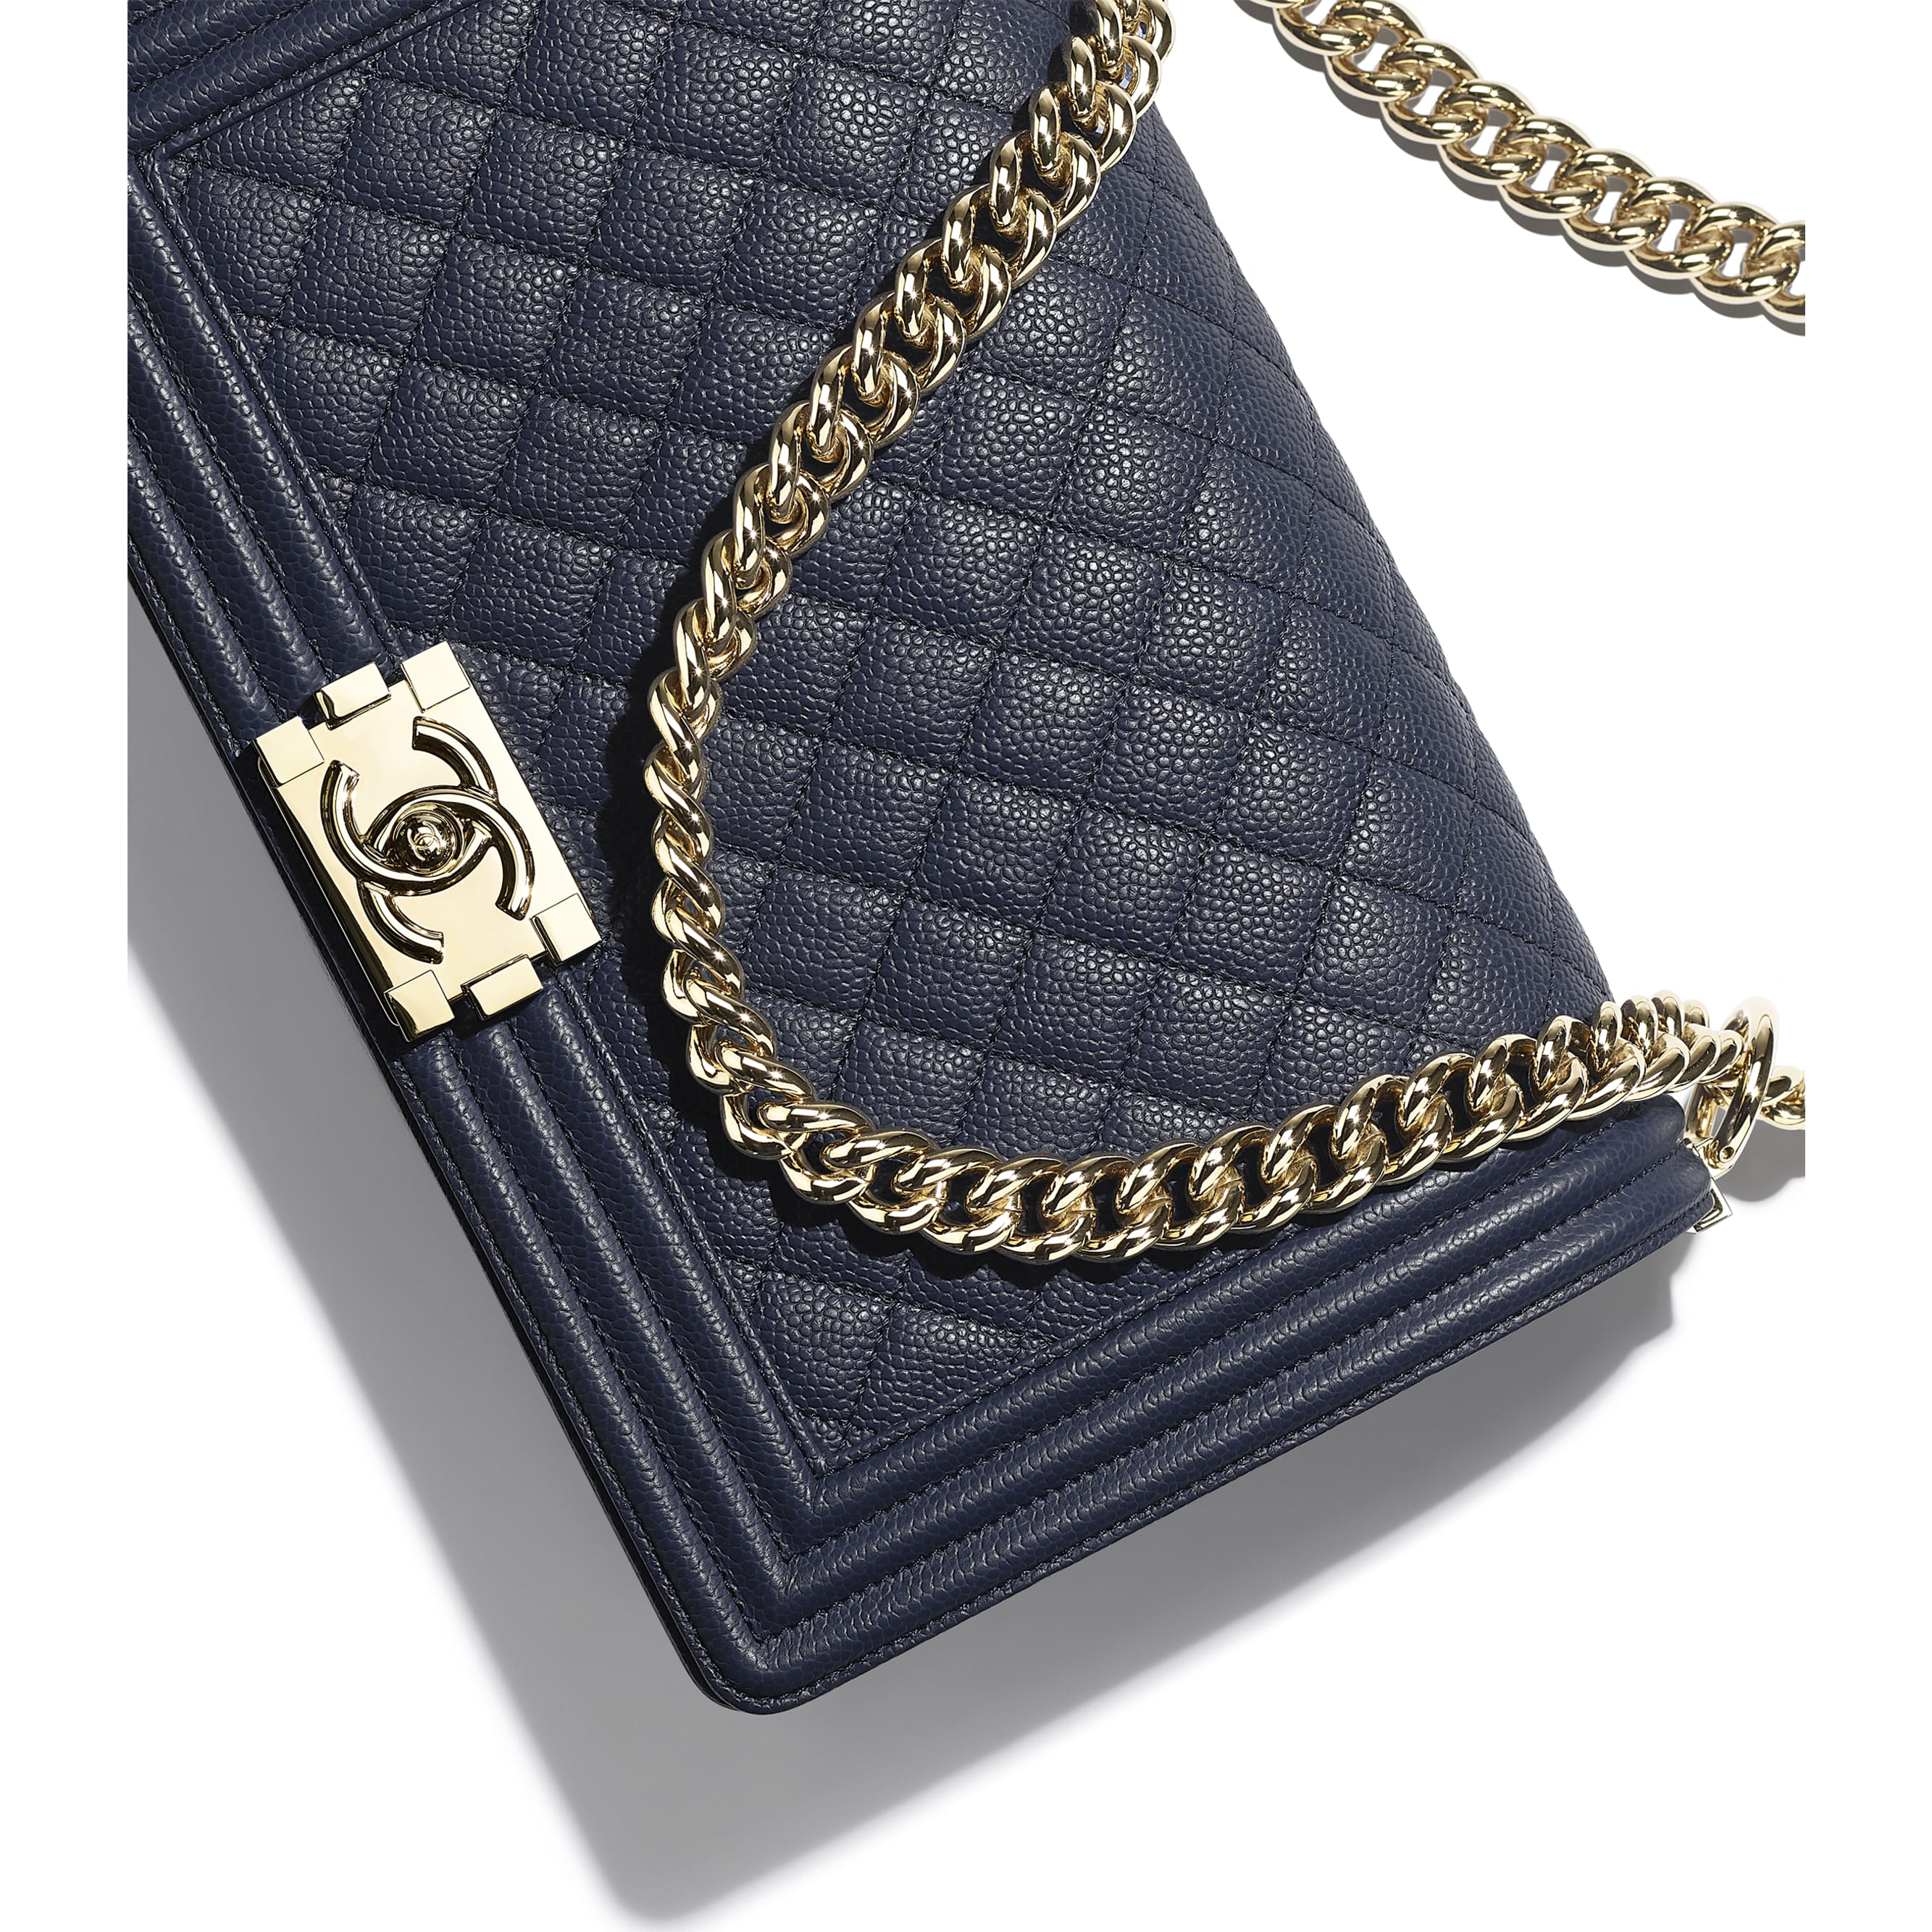 Large BOY CHANEL Handbag - Navy Blue - Grained Calfskin & Gold-Tone Metal - Extra view - see standard sized version